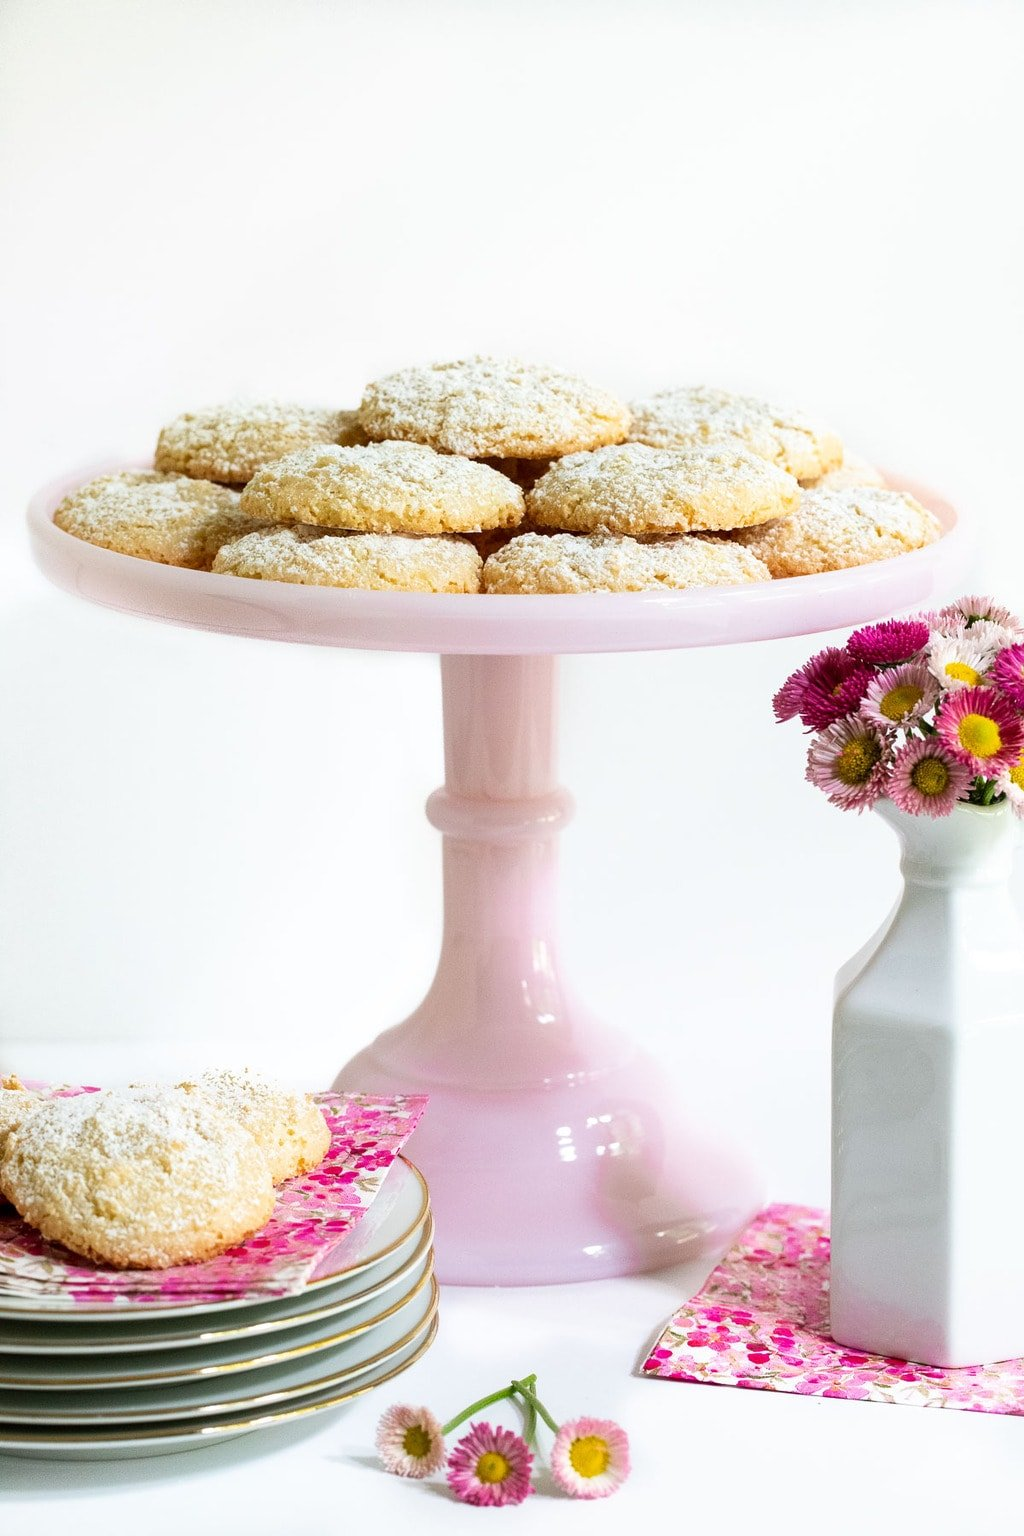 Vertical photo of a batch of Ridiculously Easy French Almond Cookies on a pink pedestal serving plate.